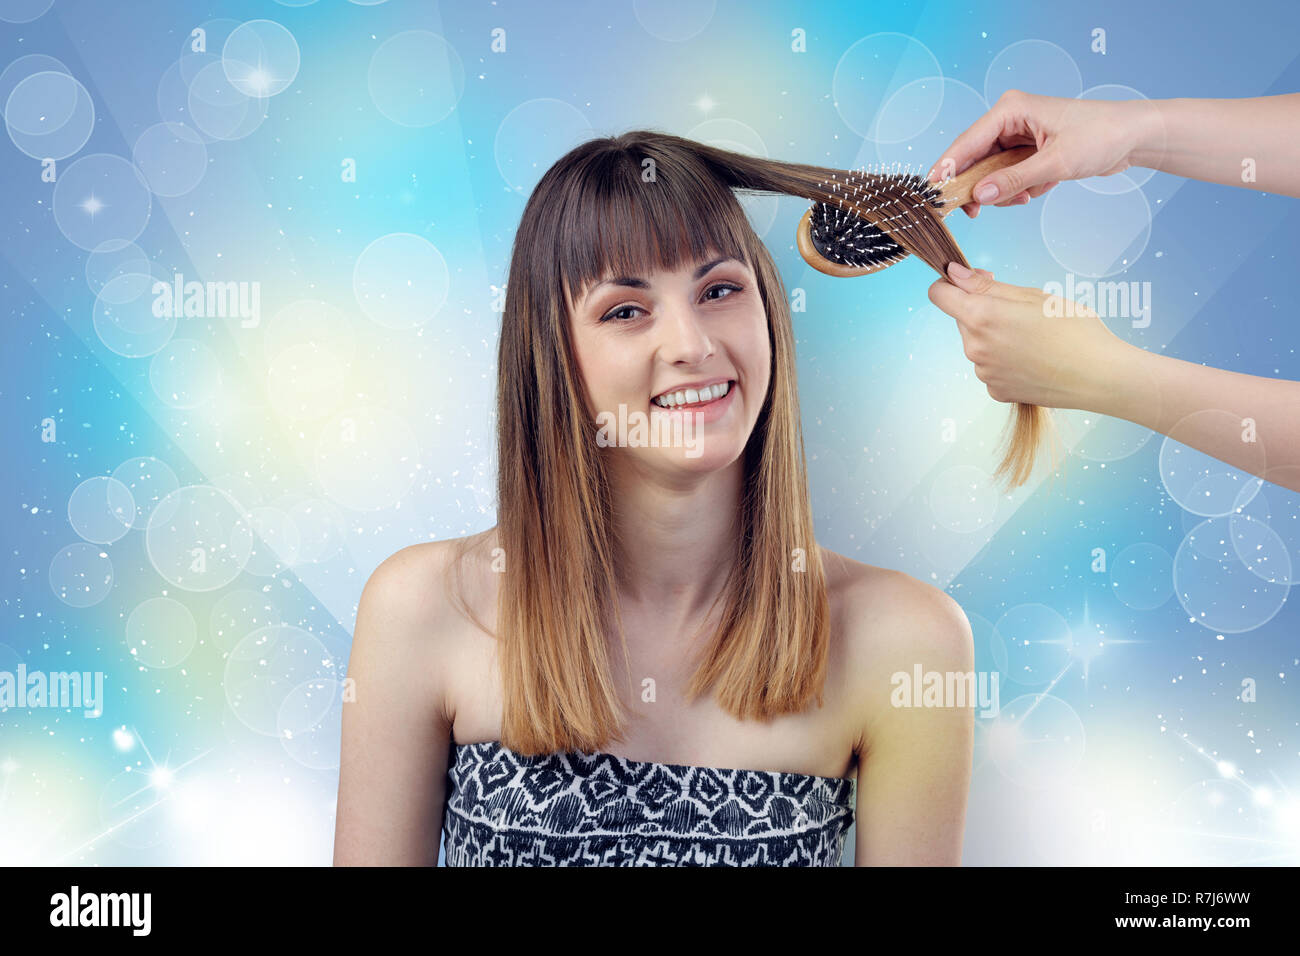 bed691cd1 Skinny young girl portrait in beauty salon with colourful shiny concept -  Stock Image